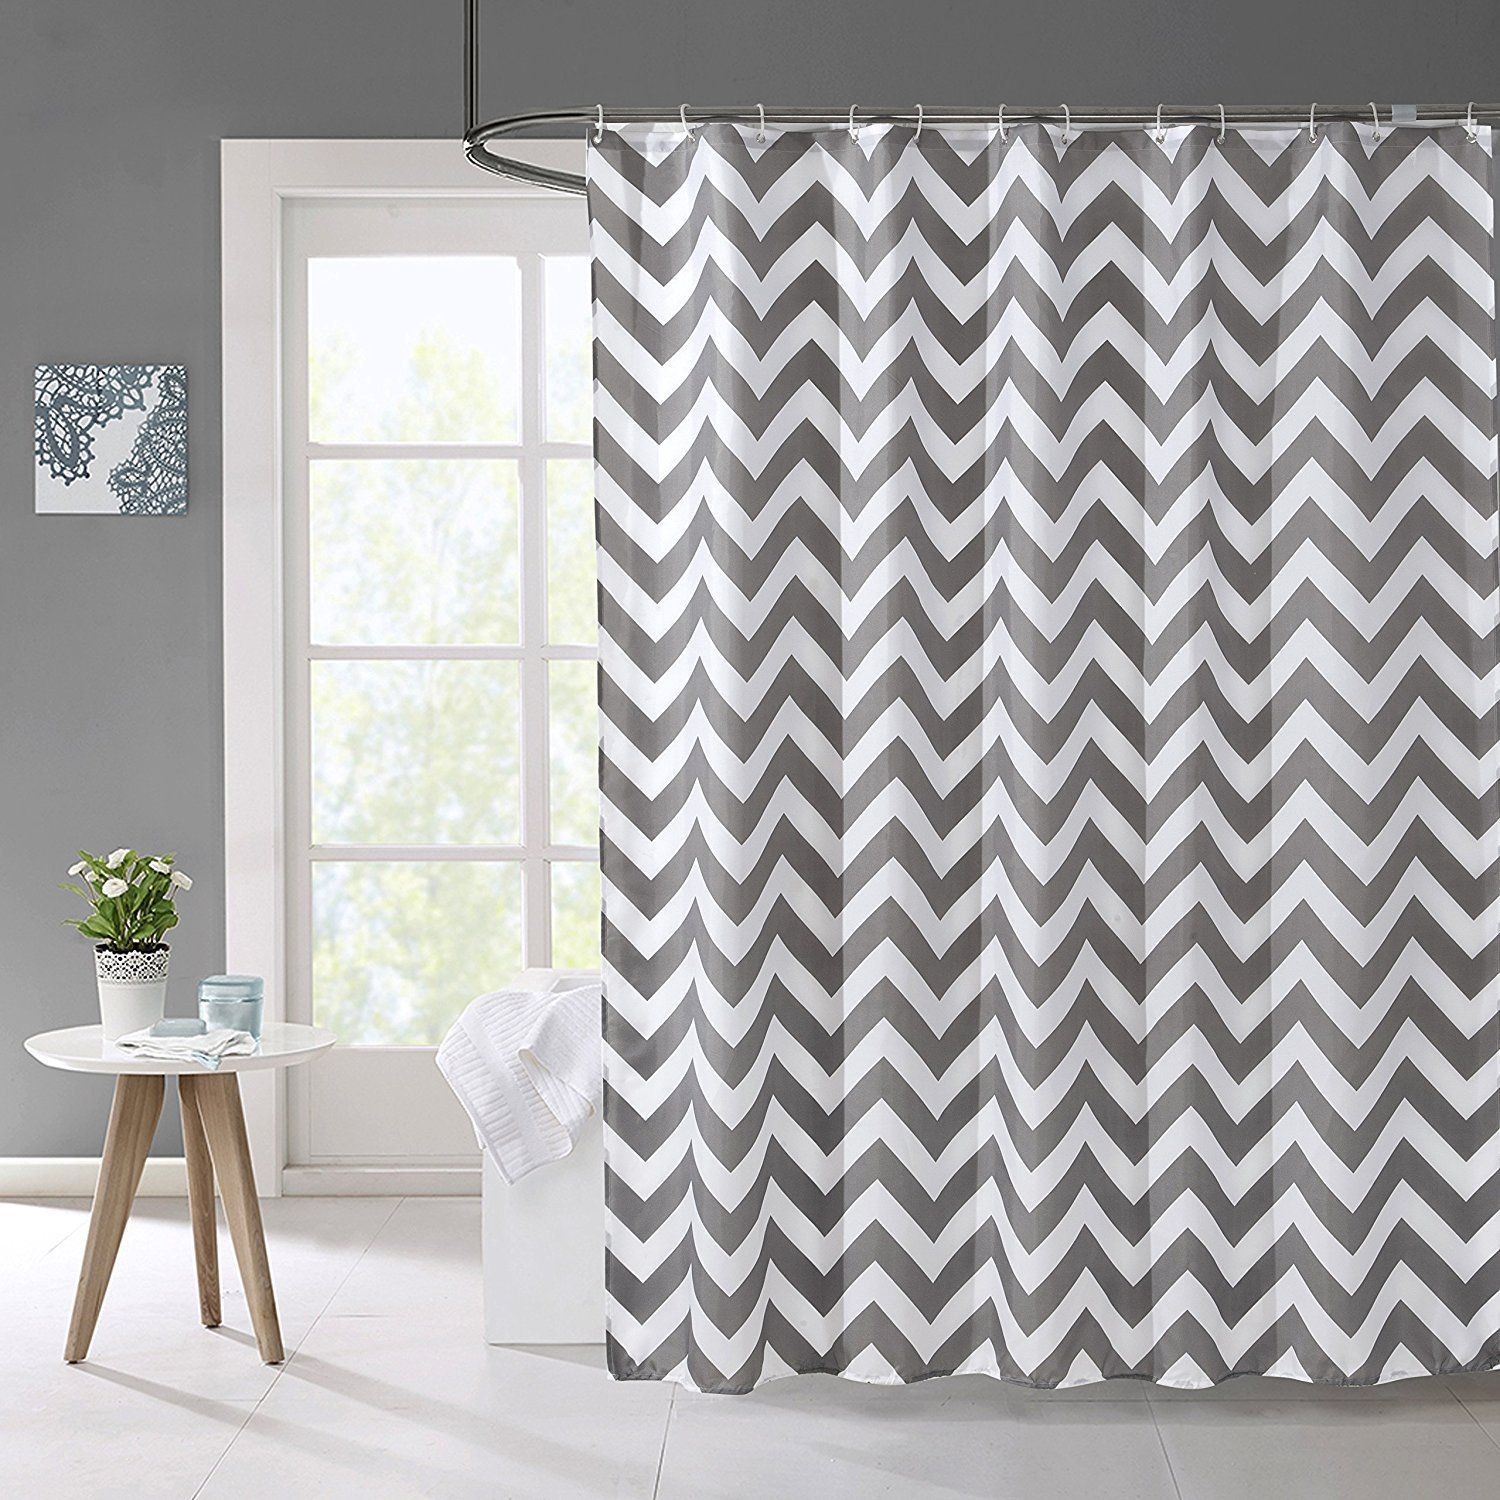 Amazon Hogoo Shower Curtain with Hooks Treated to Resist